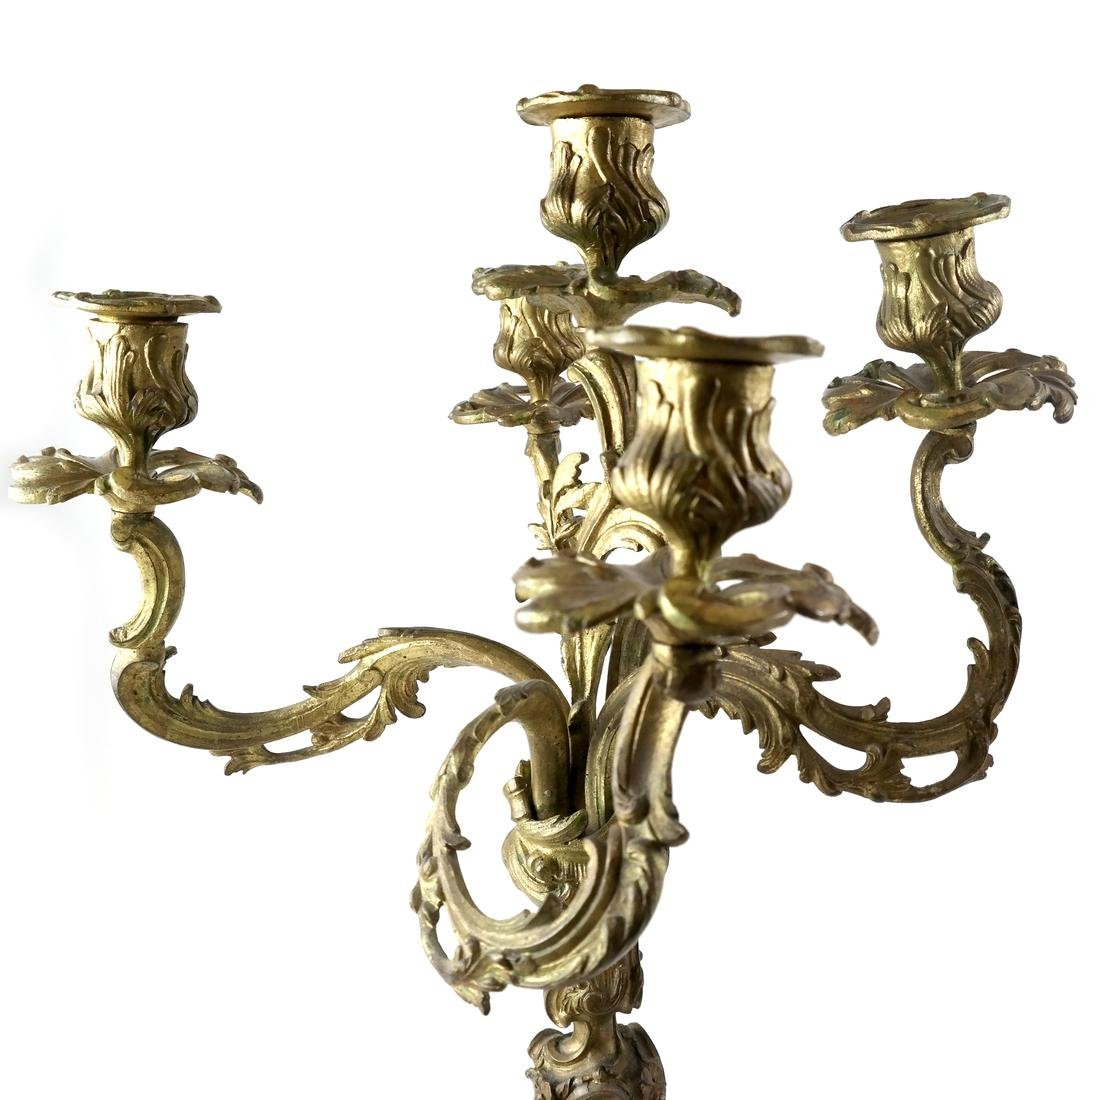 Pair of French Bronze Candelabra - 2